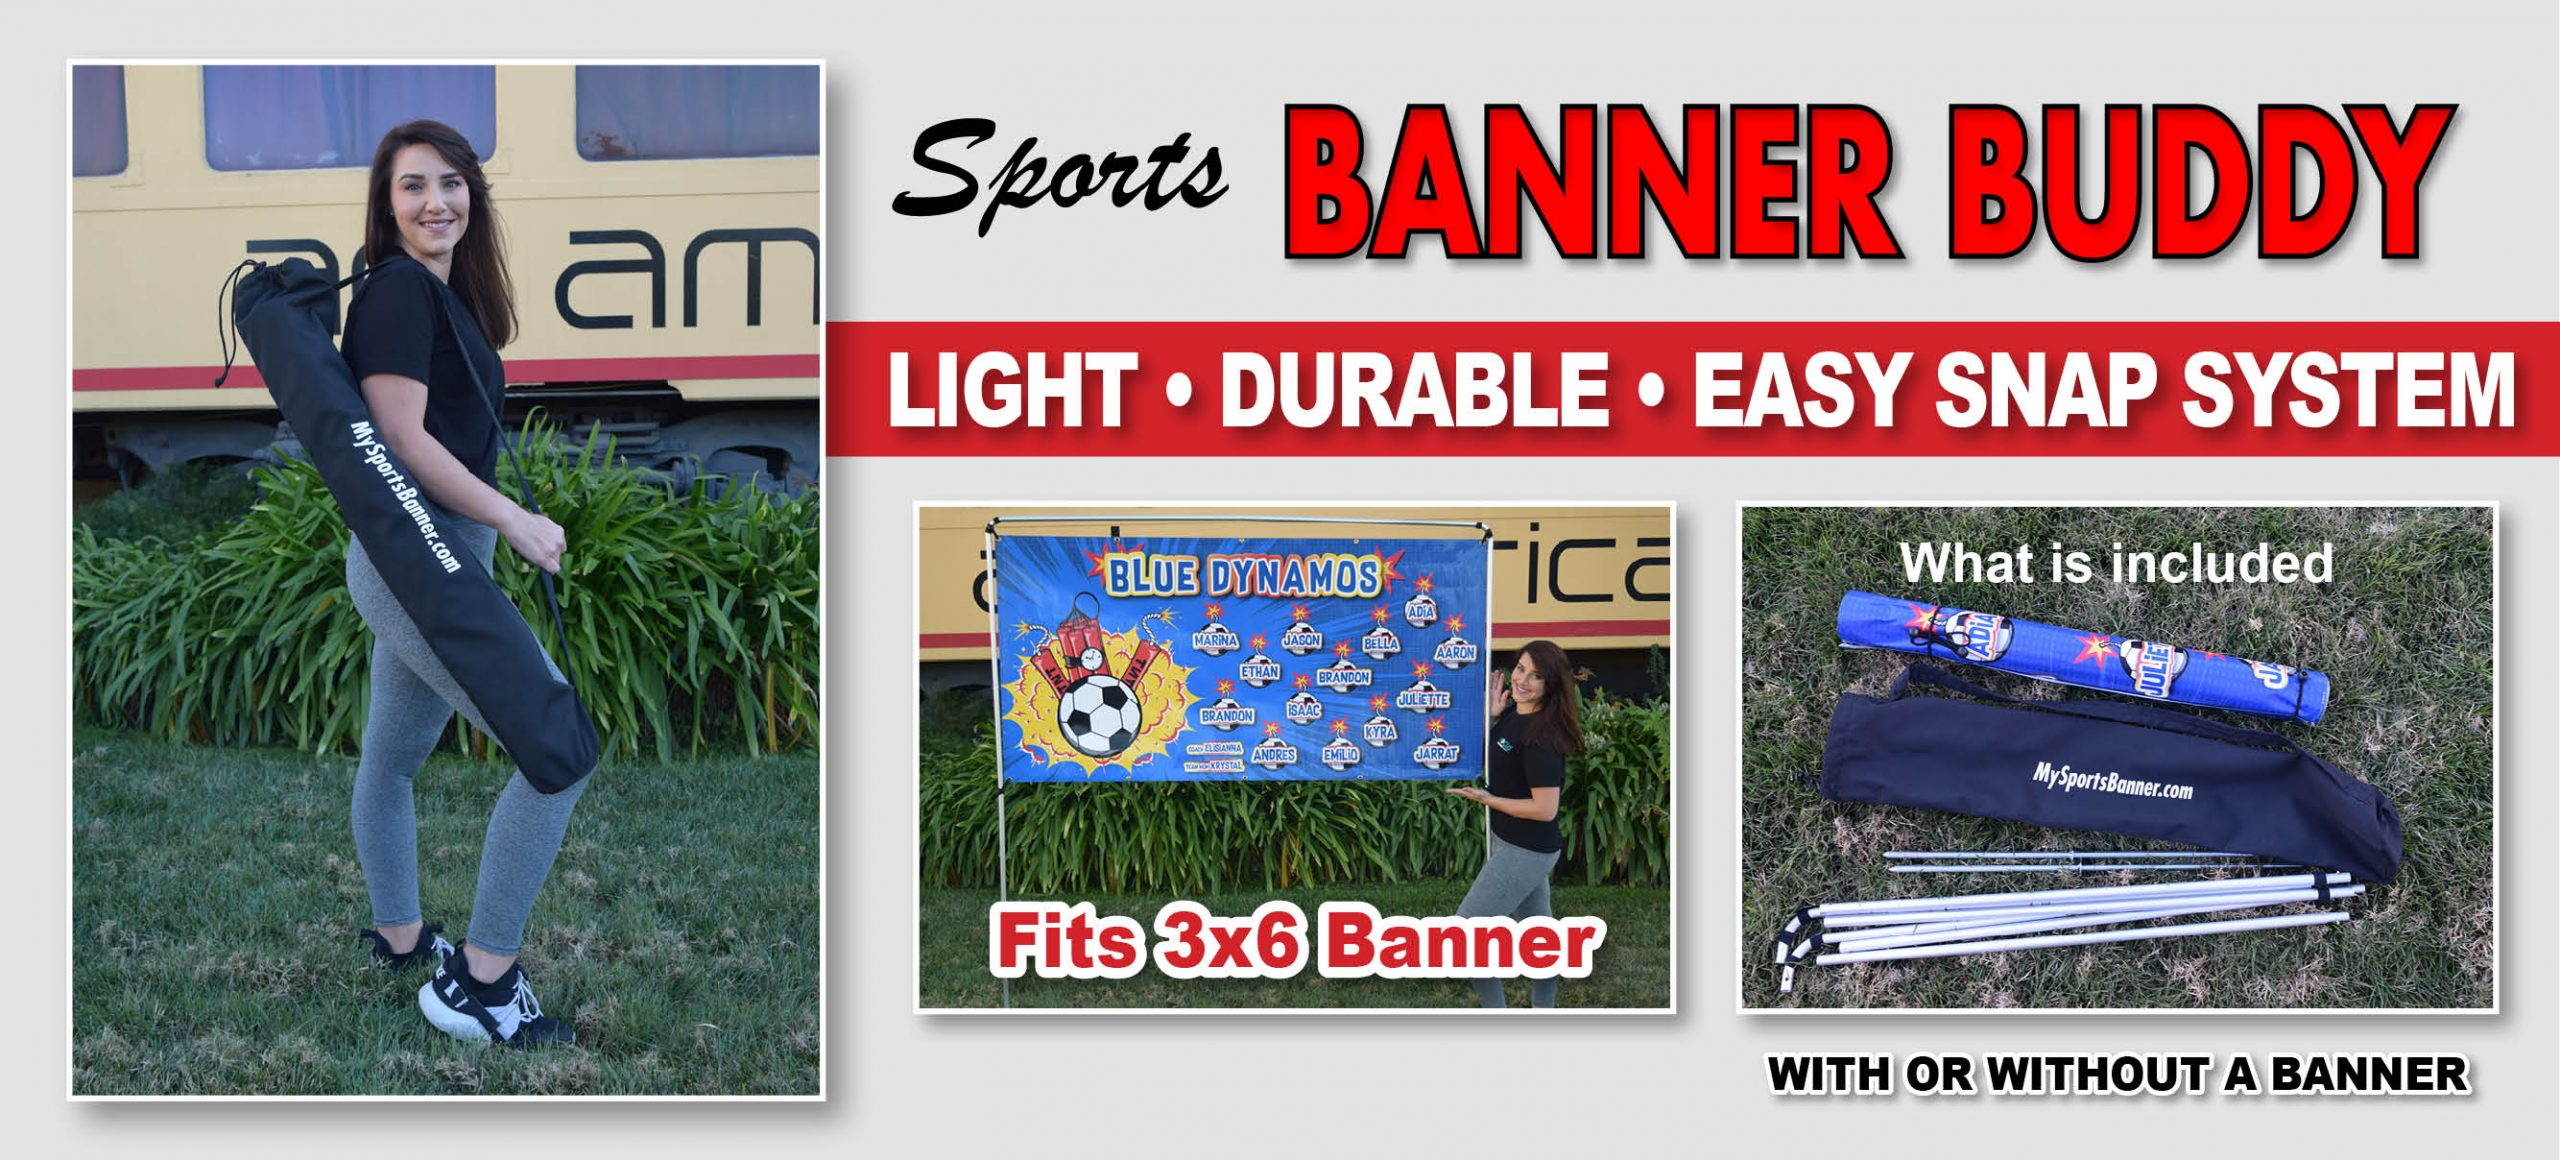 Sports Banner Buddy - Stand, Banner & Bag Package